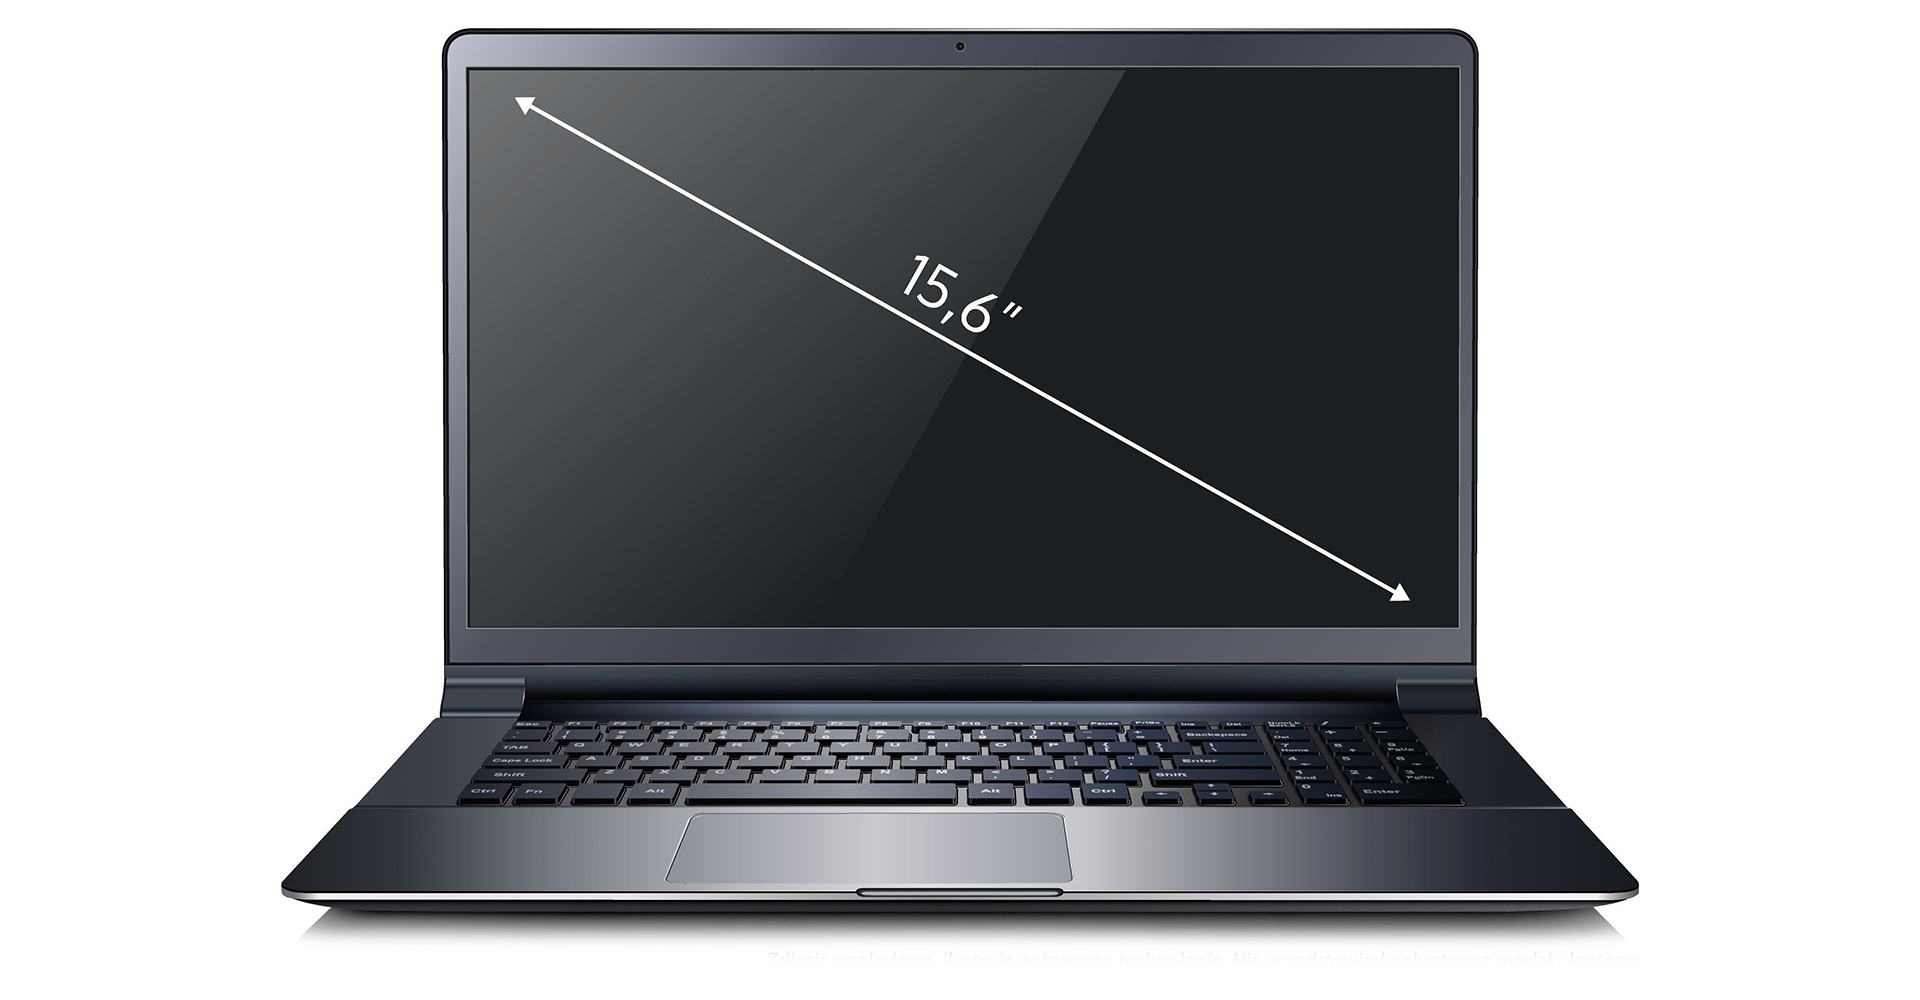 Acer Aspire 3 (NX.GY9EP.015) 8 GB RAM/ 120 GB SSD/ Windows 10 Home                             15.6 collas pa diagonāli